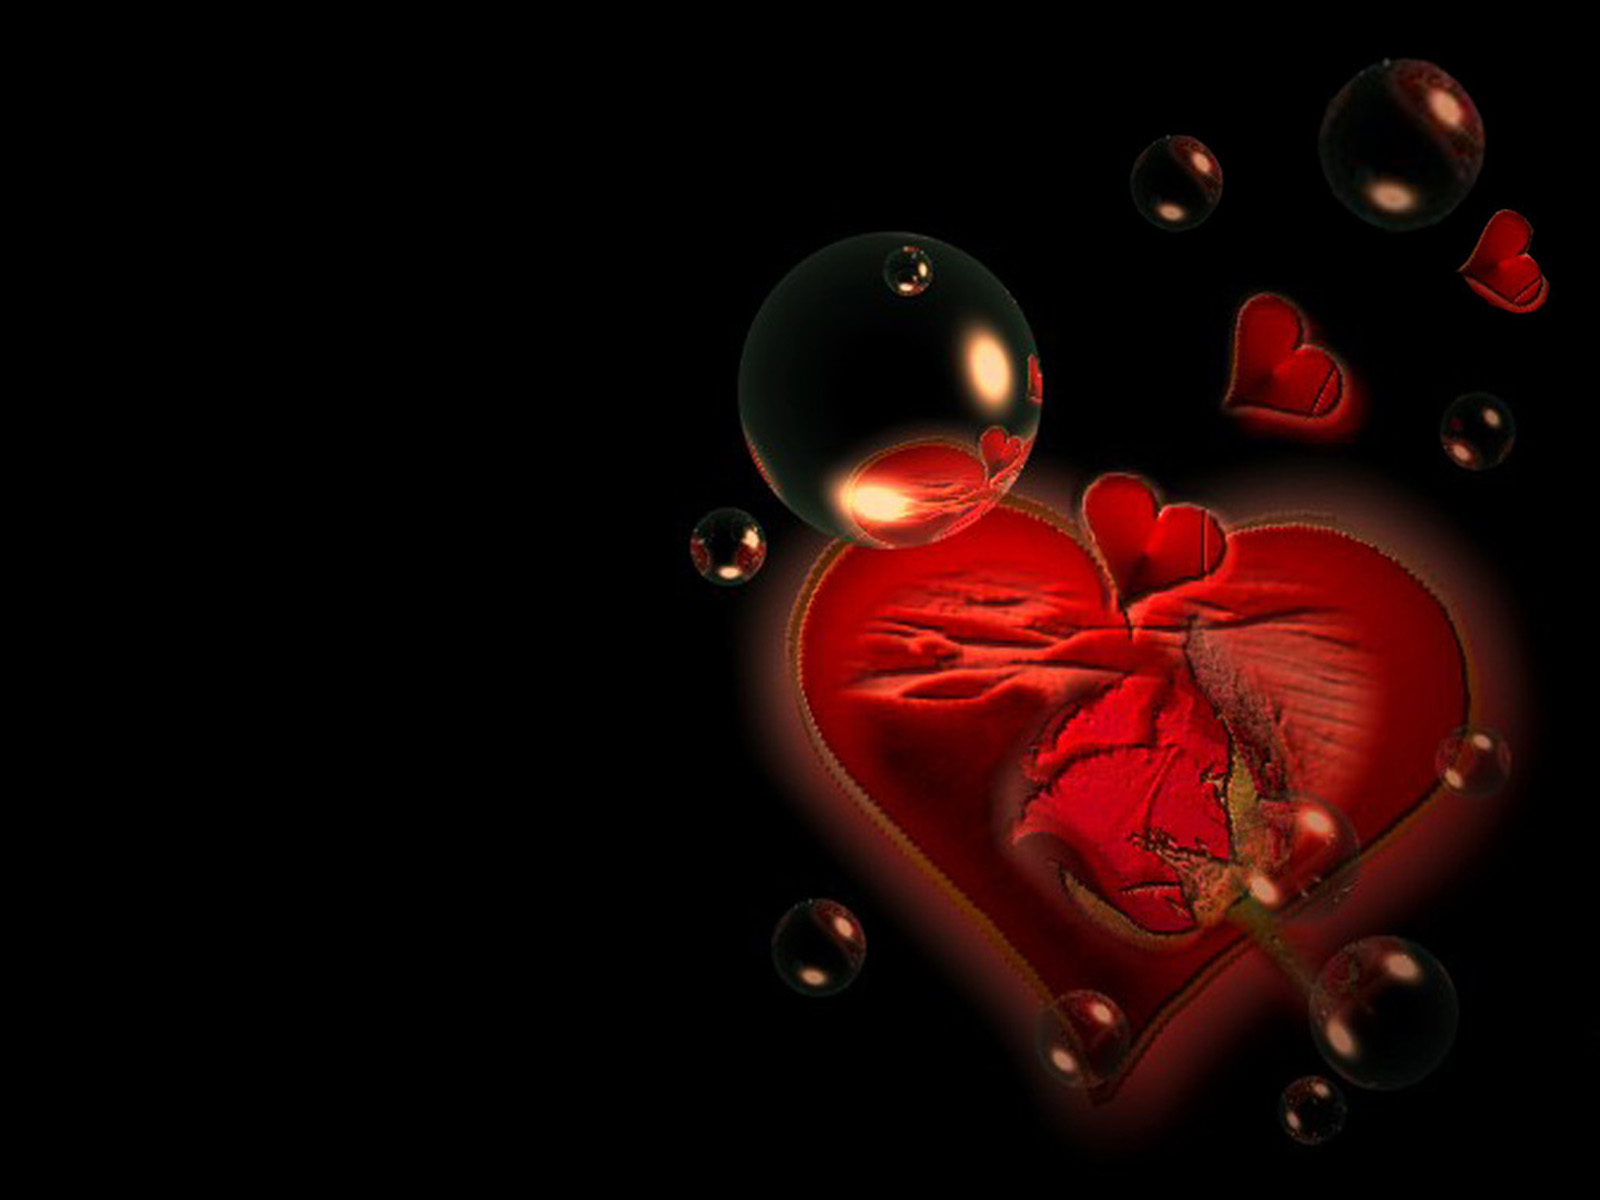 3D Love Pictures And Wallpapers ~ HD Wallpapers